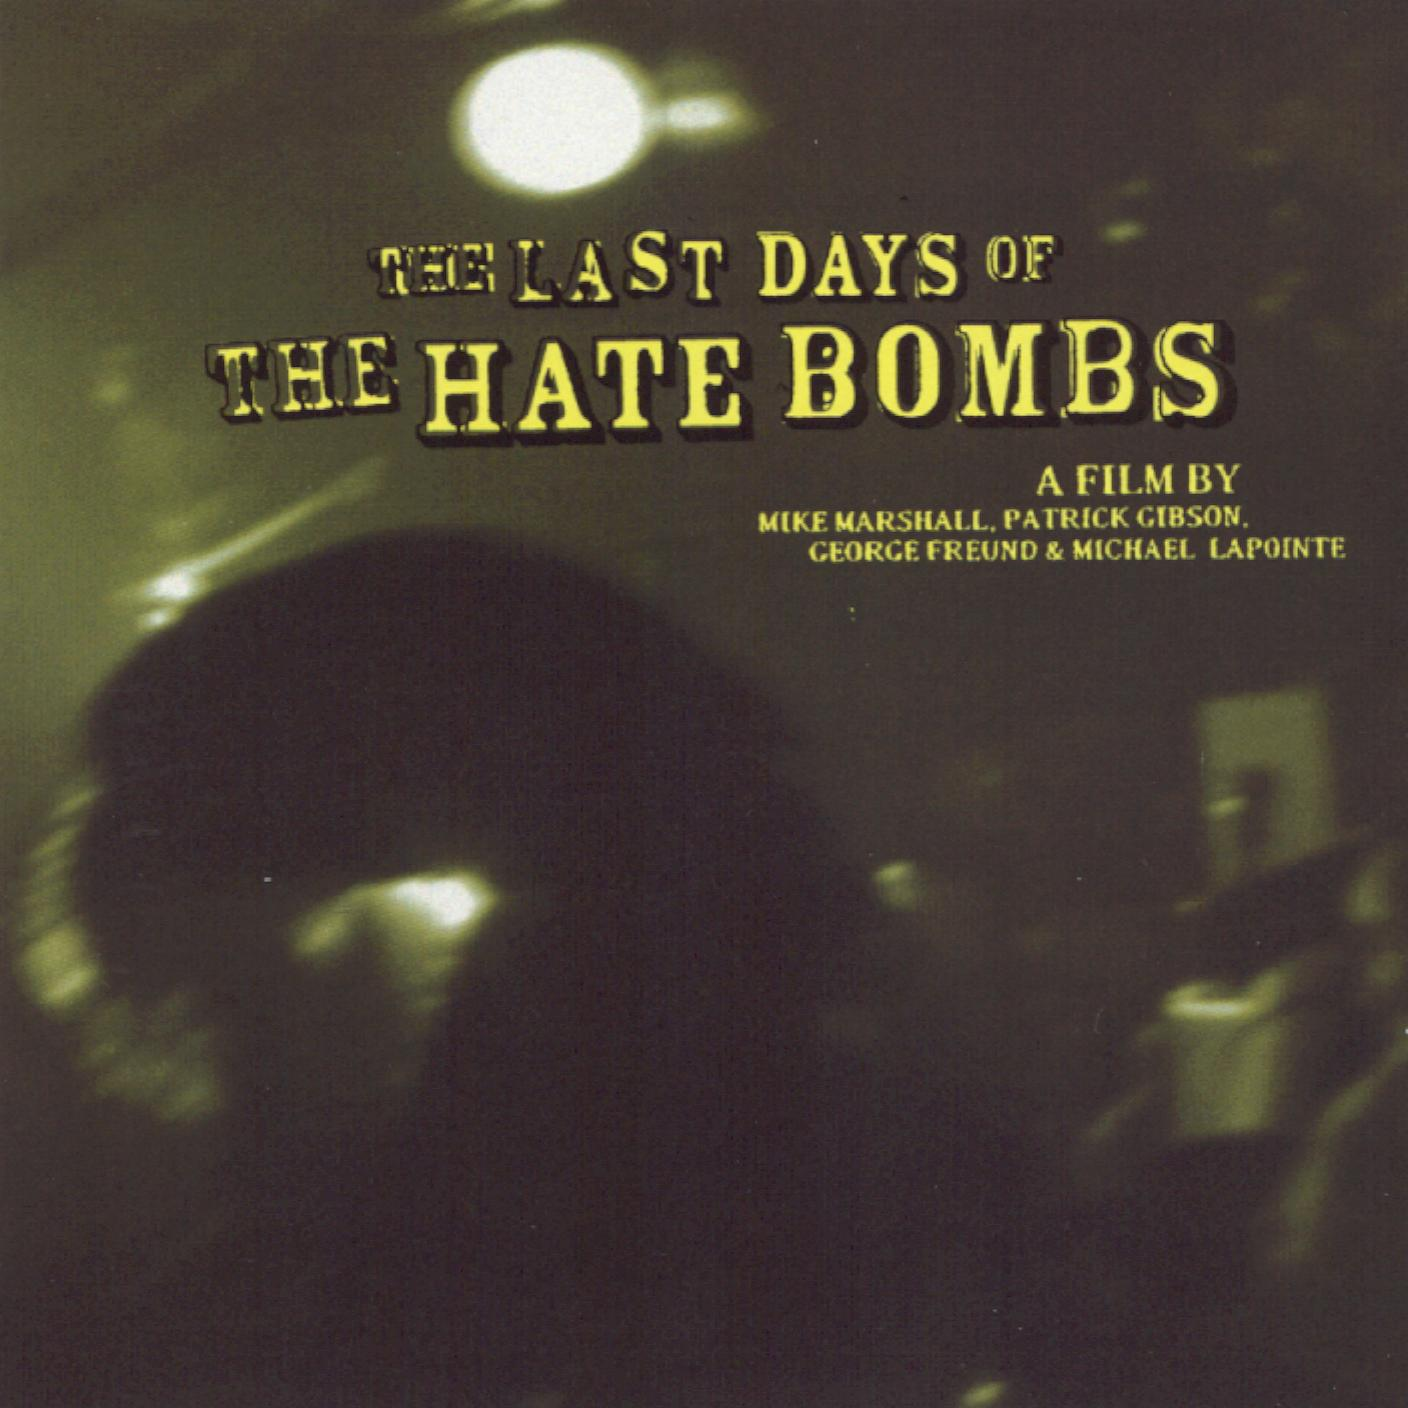 The Hate Bombs: The Last Days of the Hate Bombs